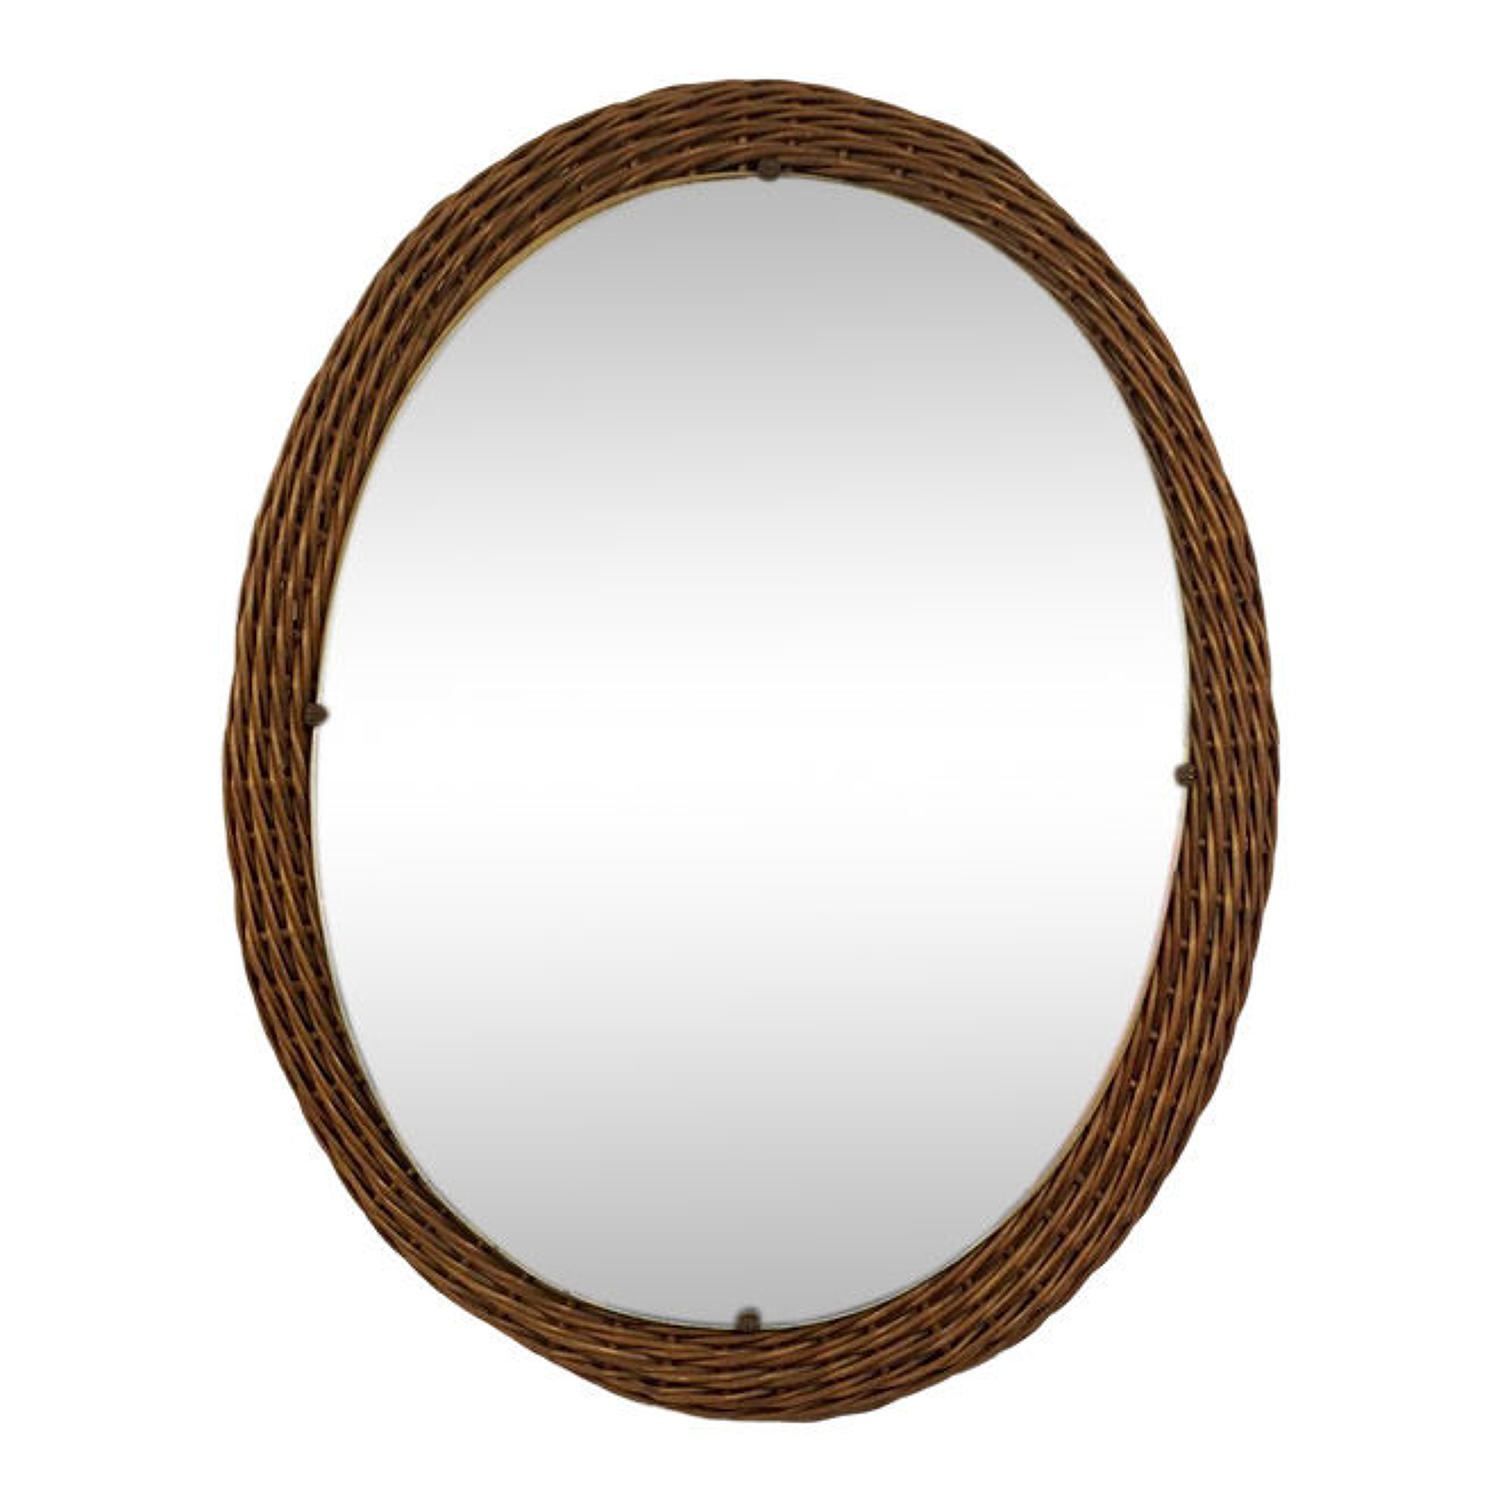 1950s Italian wicker wall mirror